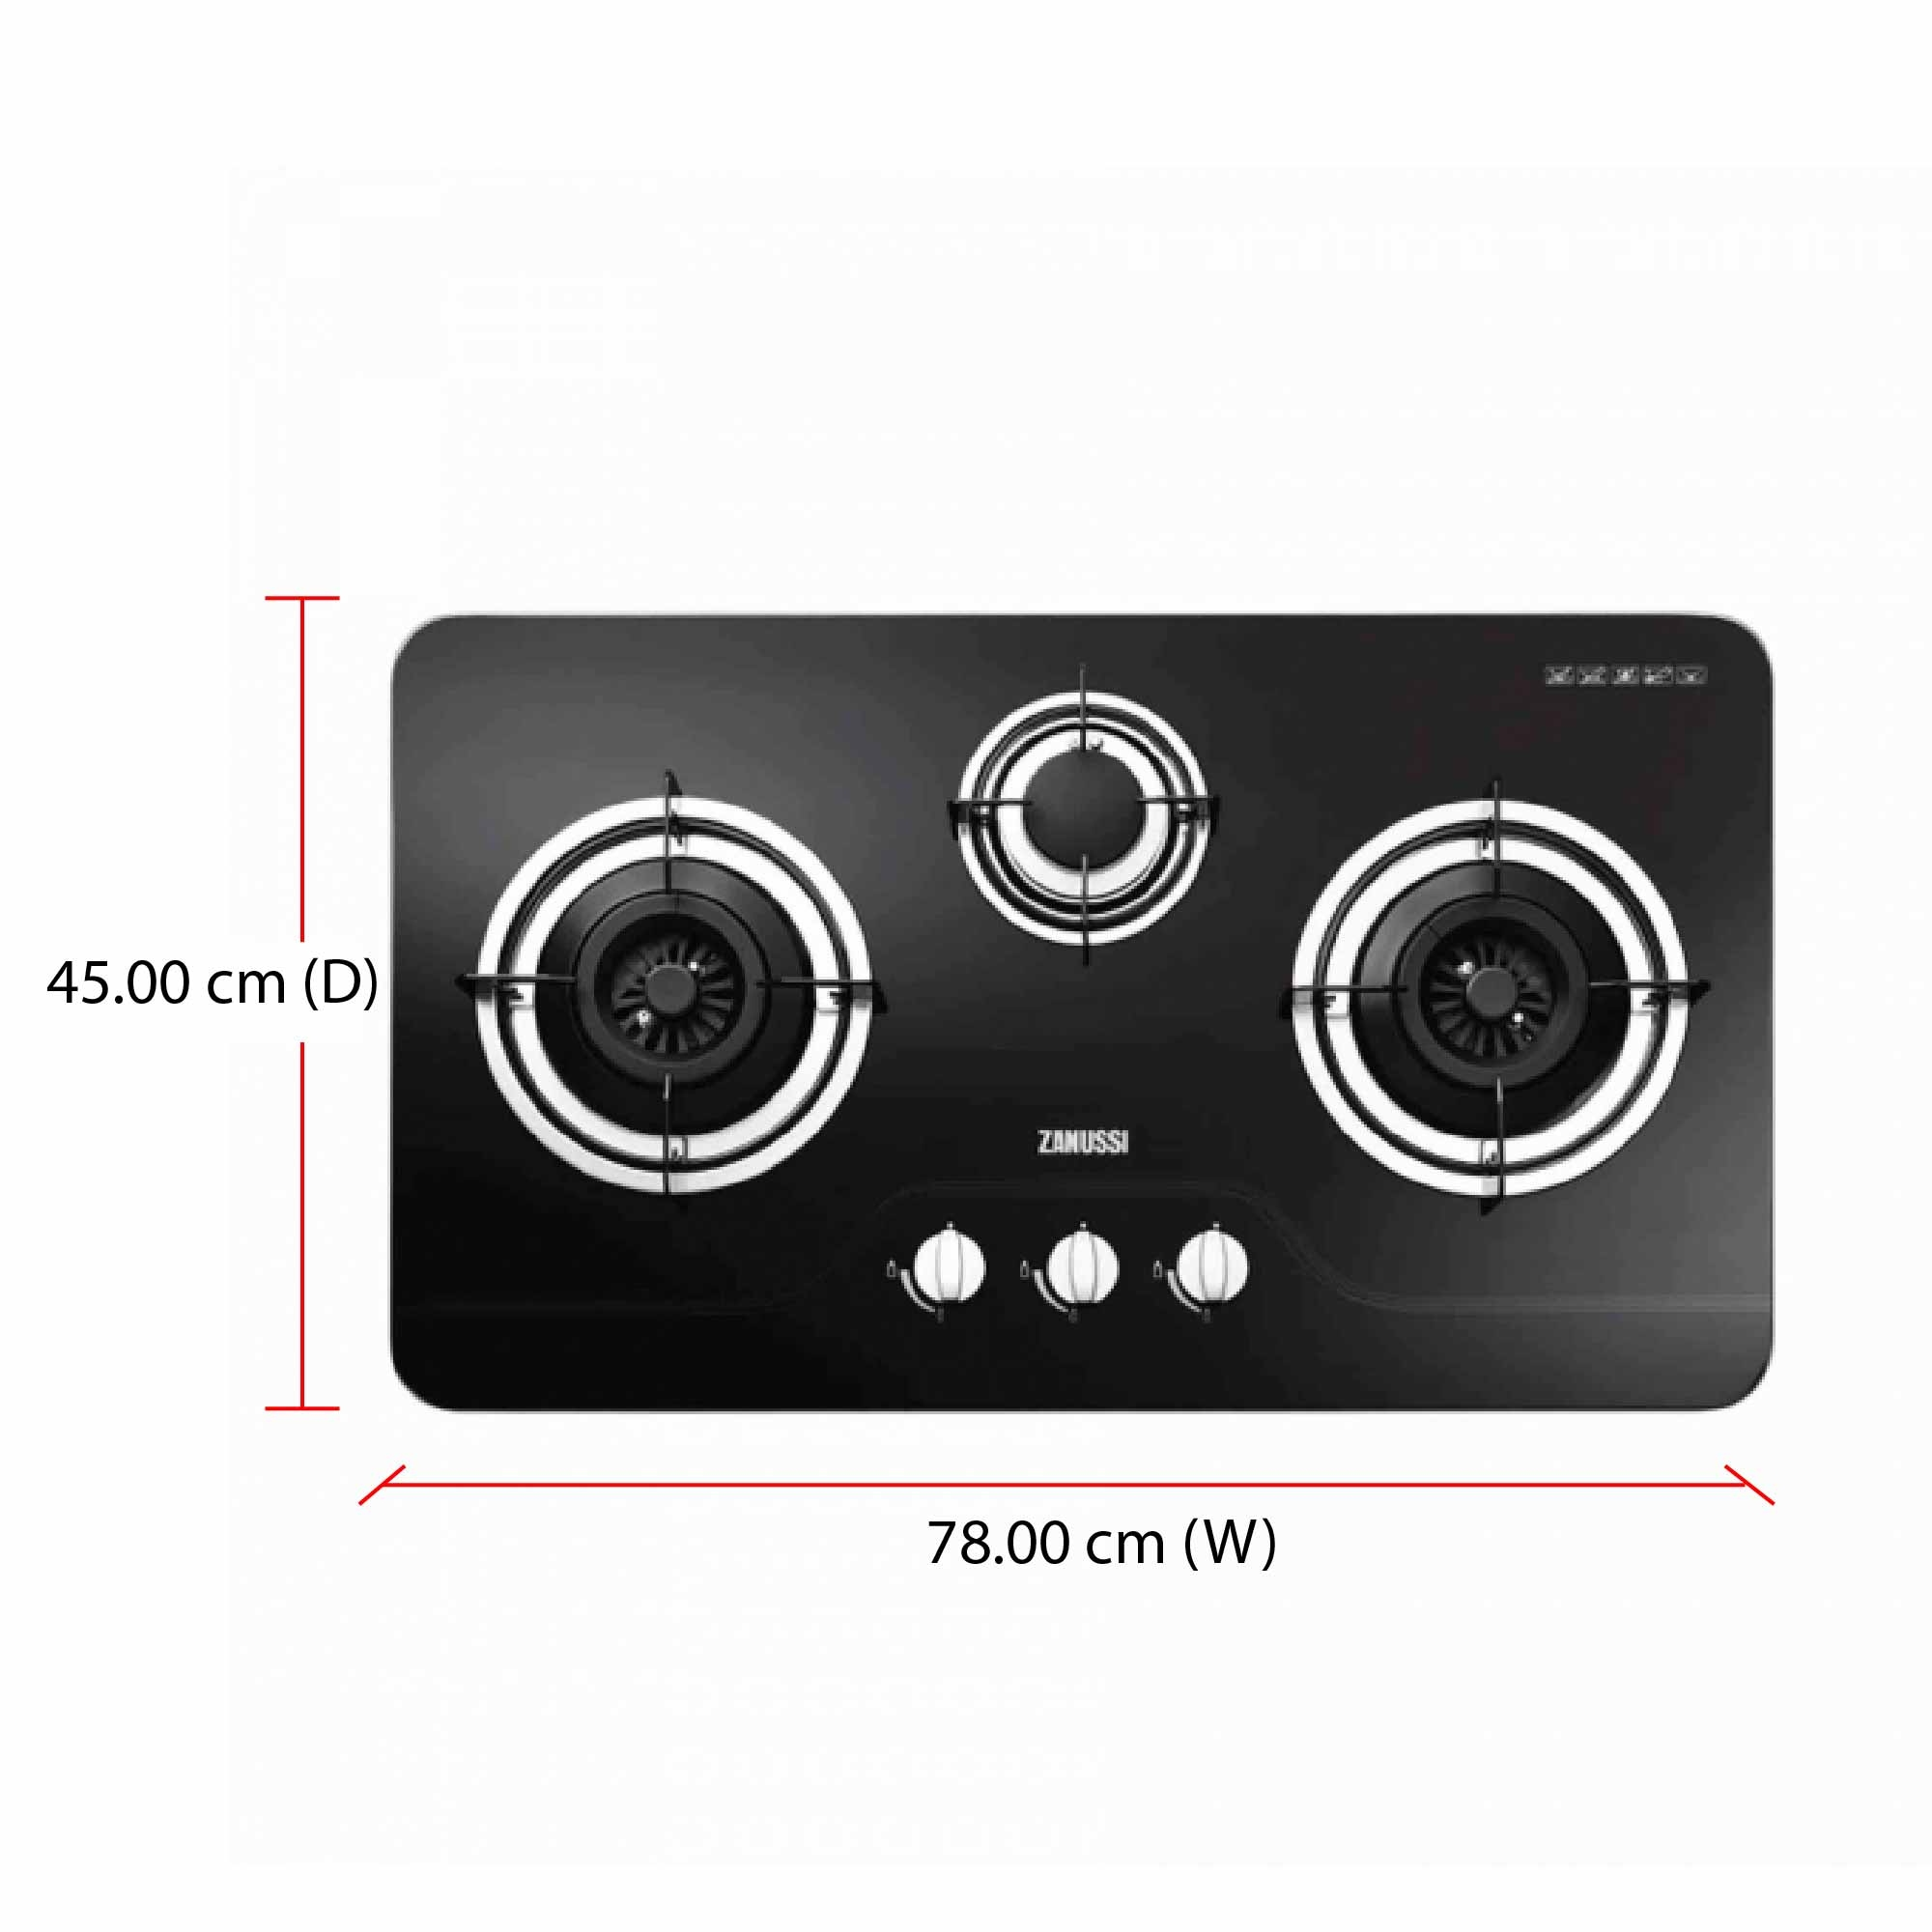 Zanussi Built-in Glass Hob ZGB752K (7600W) 78cm Enamel Pan Support